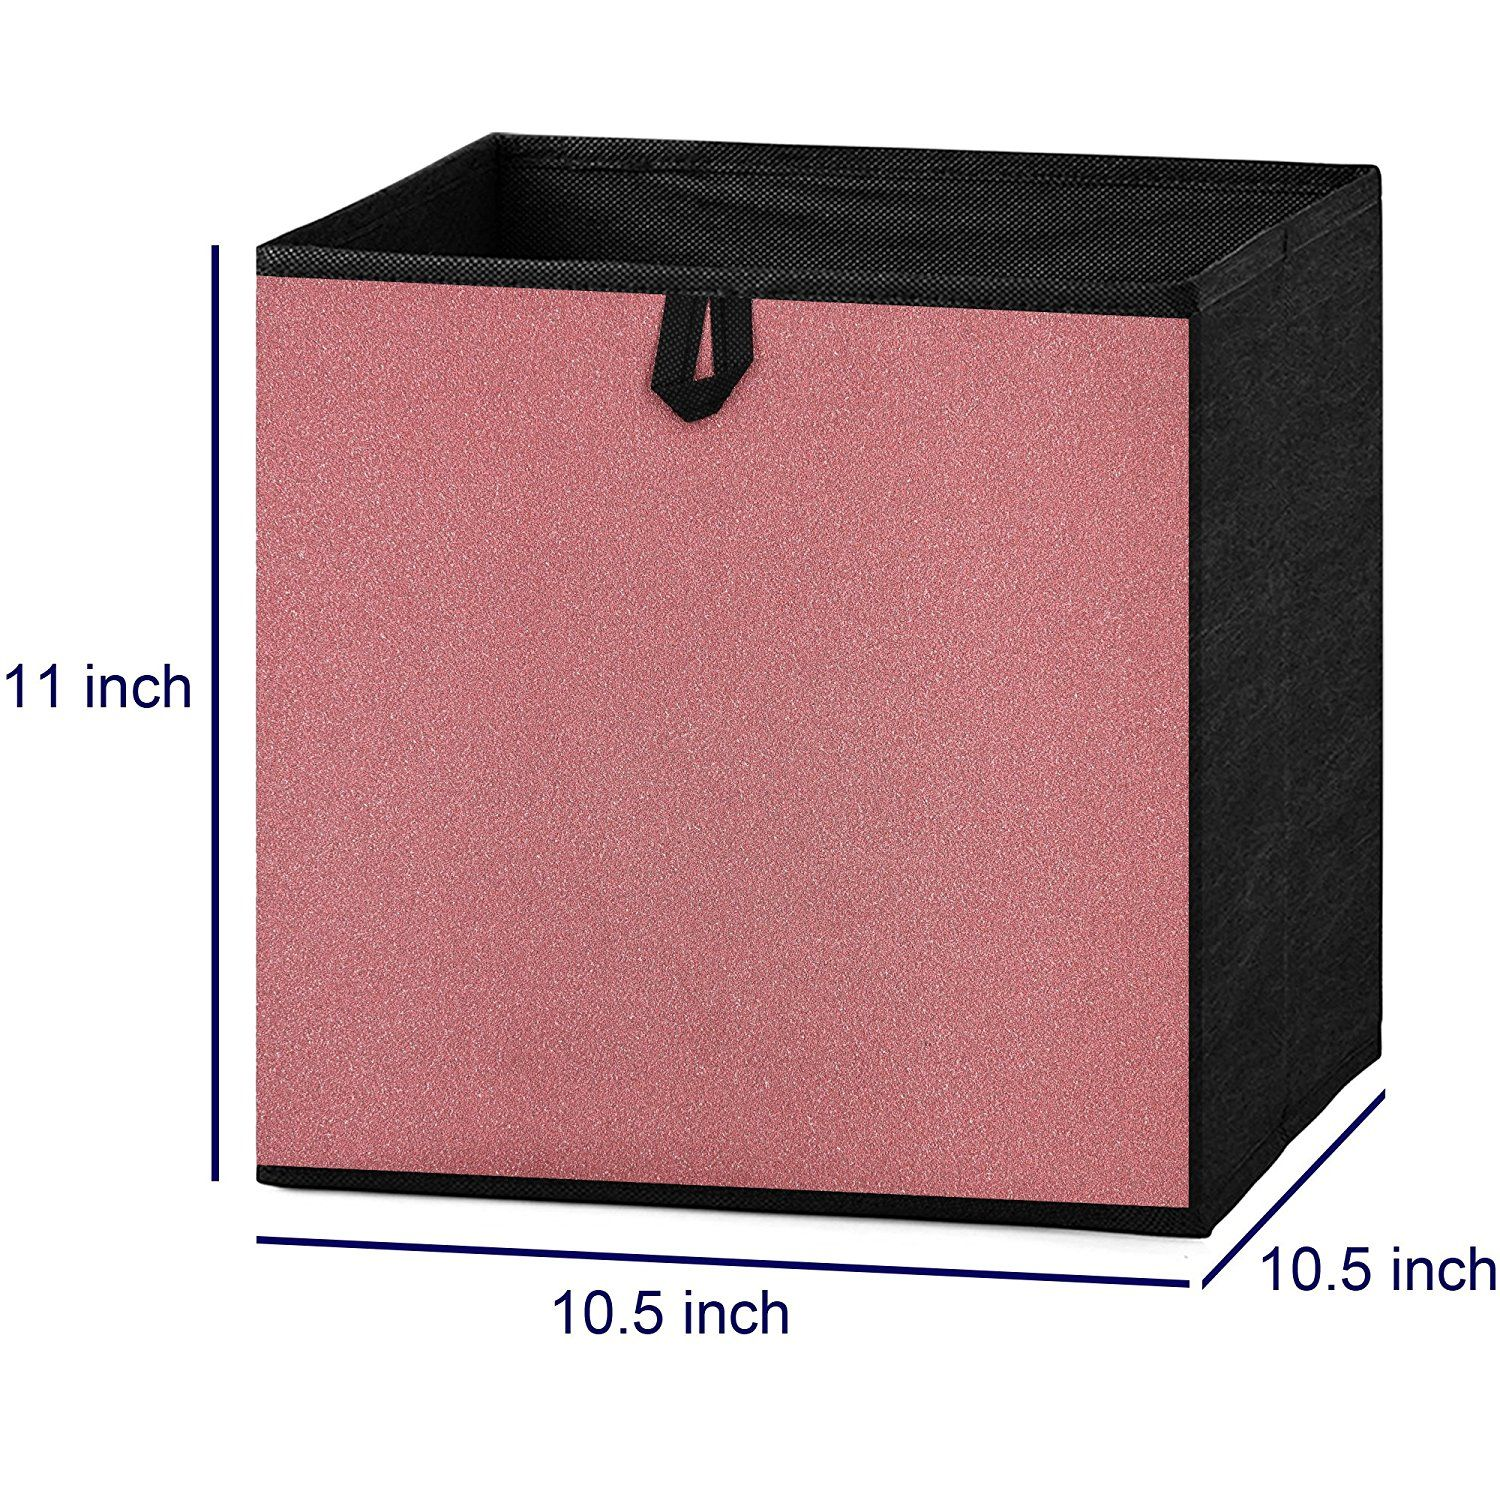 Amazon Com Foldable Storage Cube Bins Container Drawer Organizer Holographic Fabric 10 5 W X 10 5 D X 1 Drawer Organisers Cube Storage Holographic Fabric